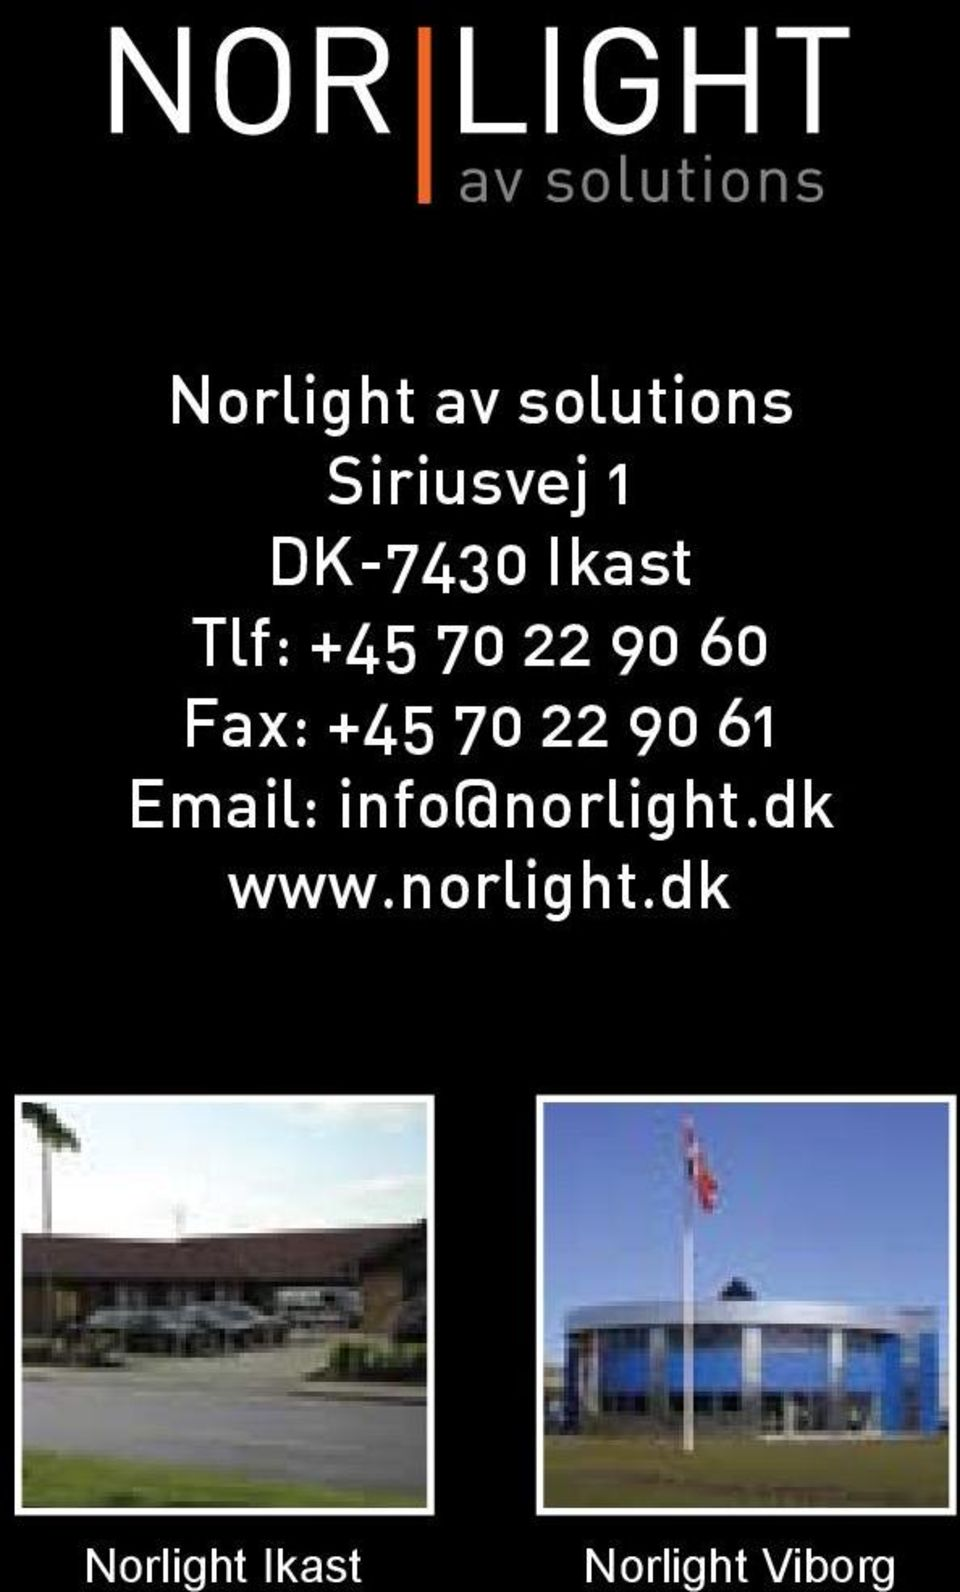 +45 70 22 90 61 Email: info@norlight.